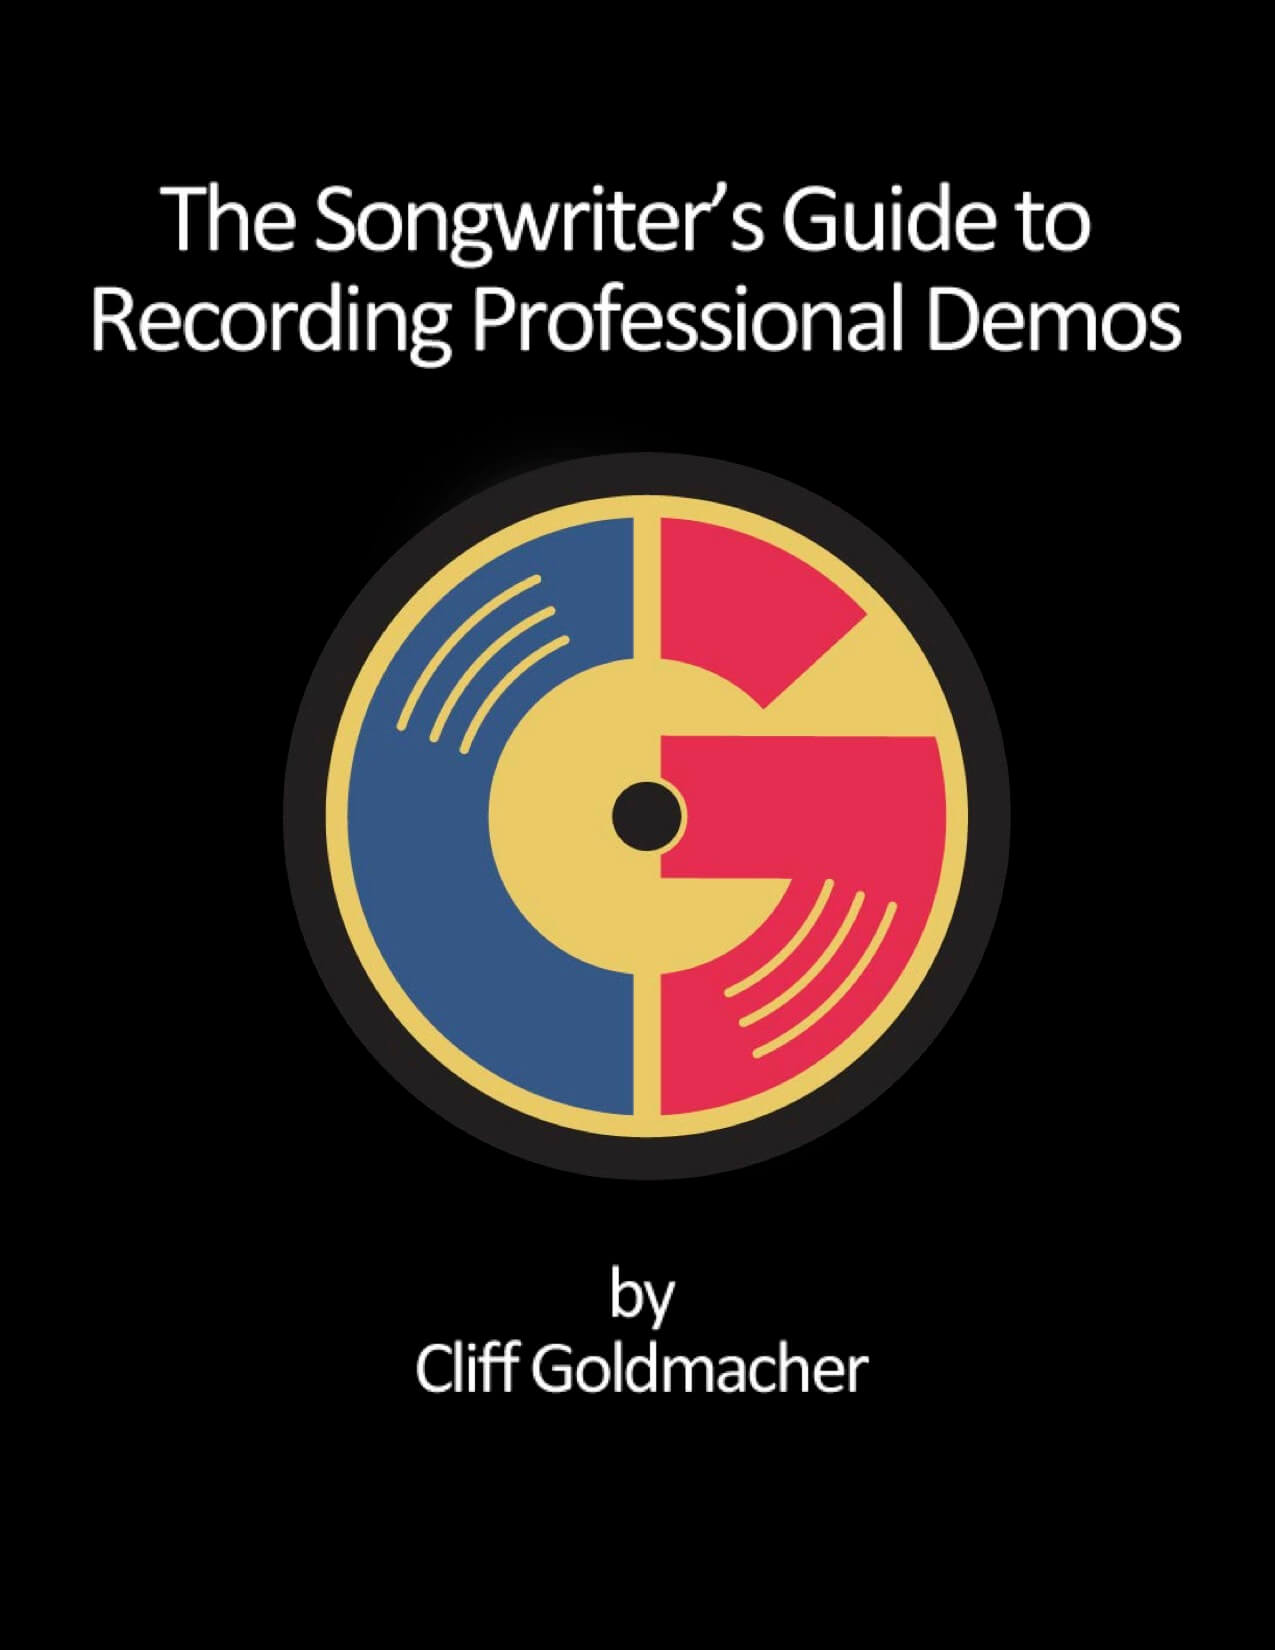 Songwriters Guid - ebook by Cliff Goldmacher